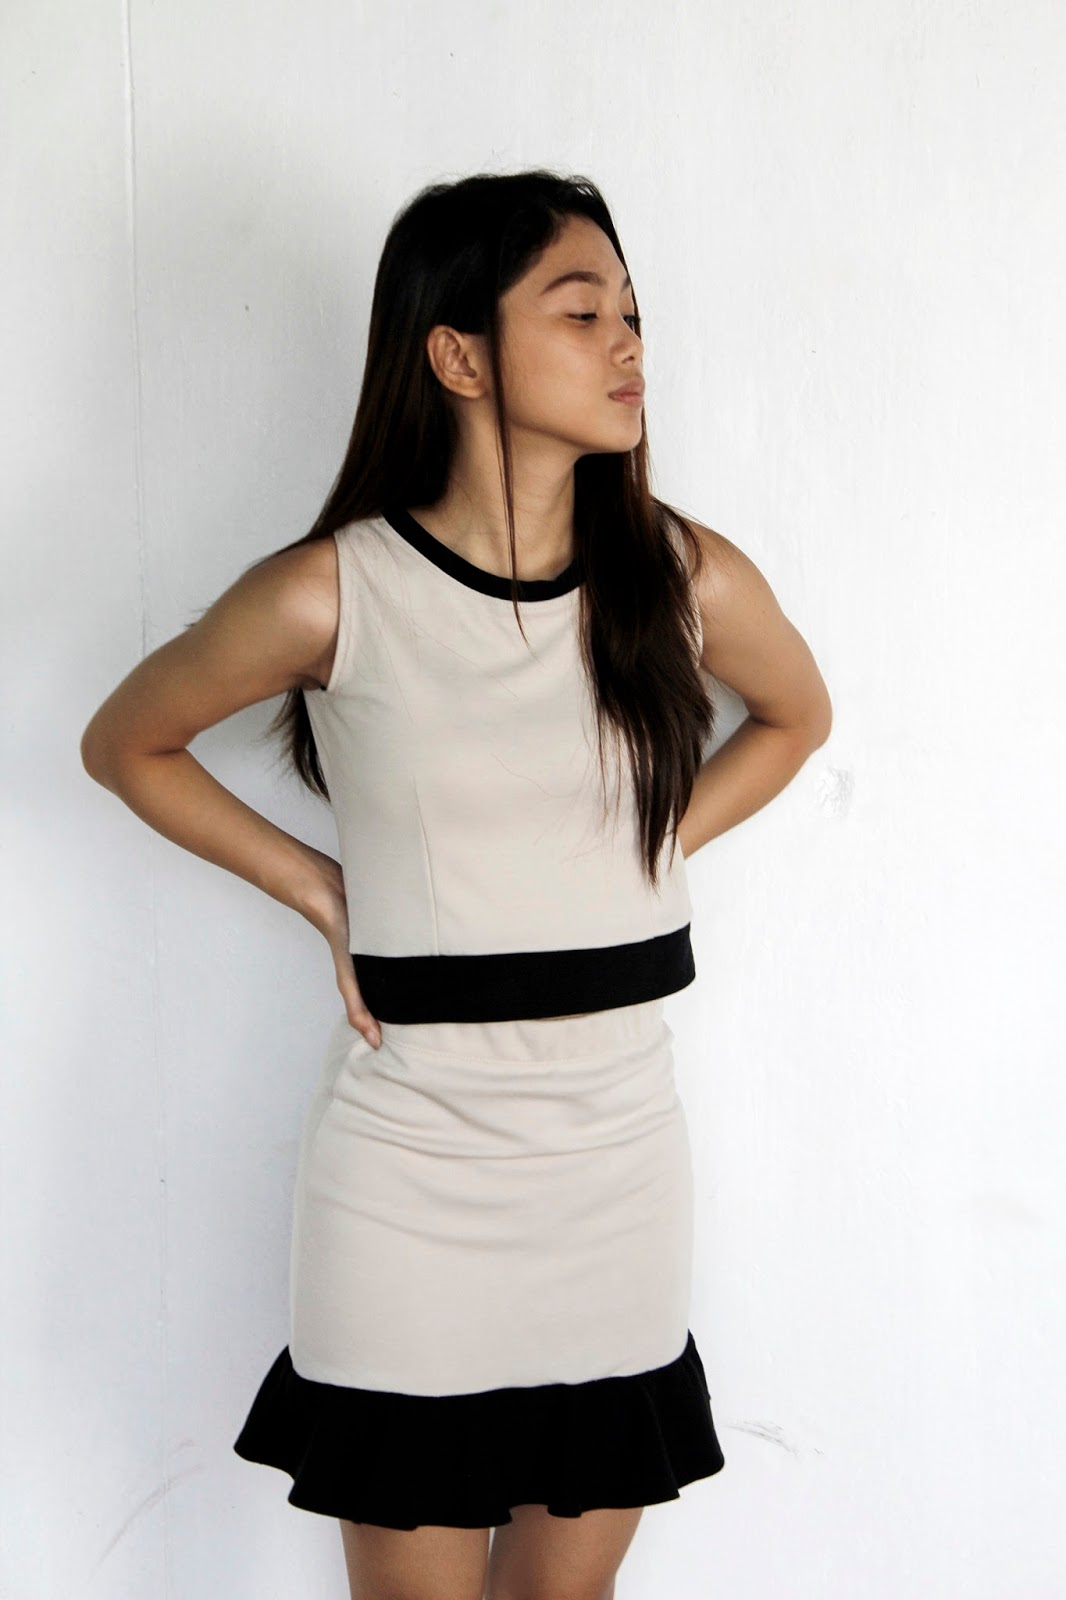 http://www.zalora.com.ph/women/clothing/dresses/